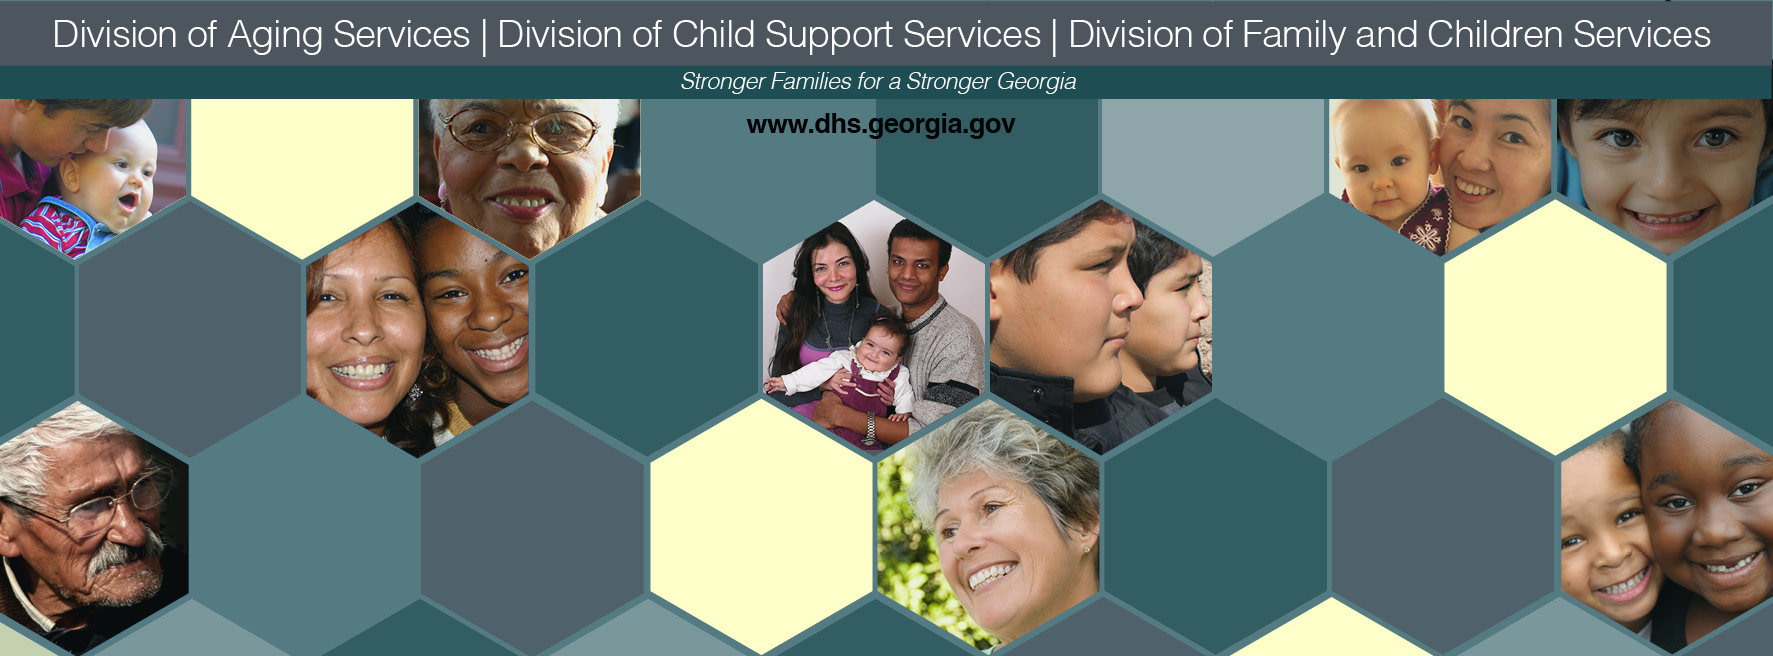 Division of Child Support Services